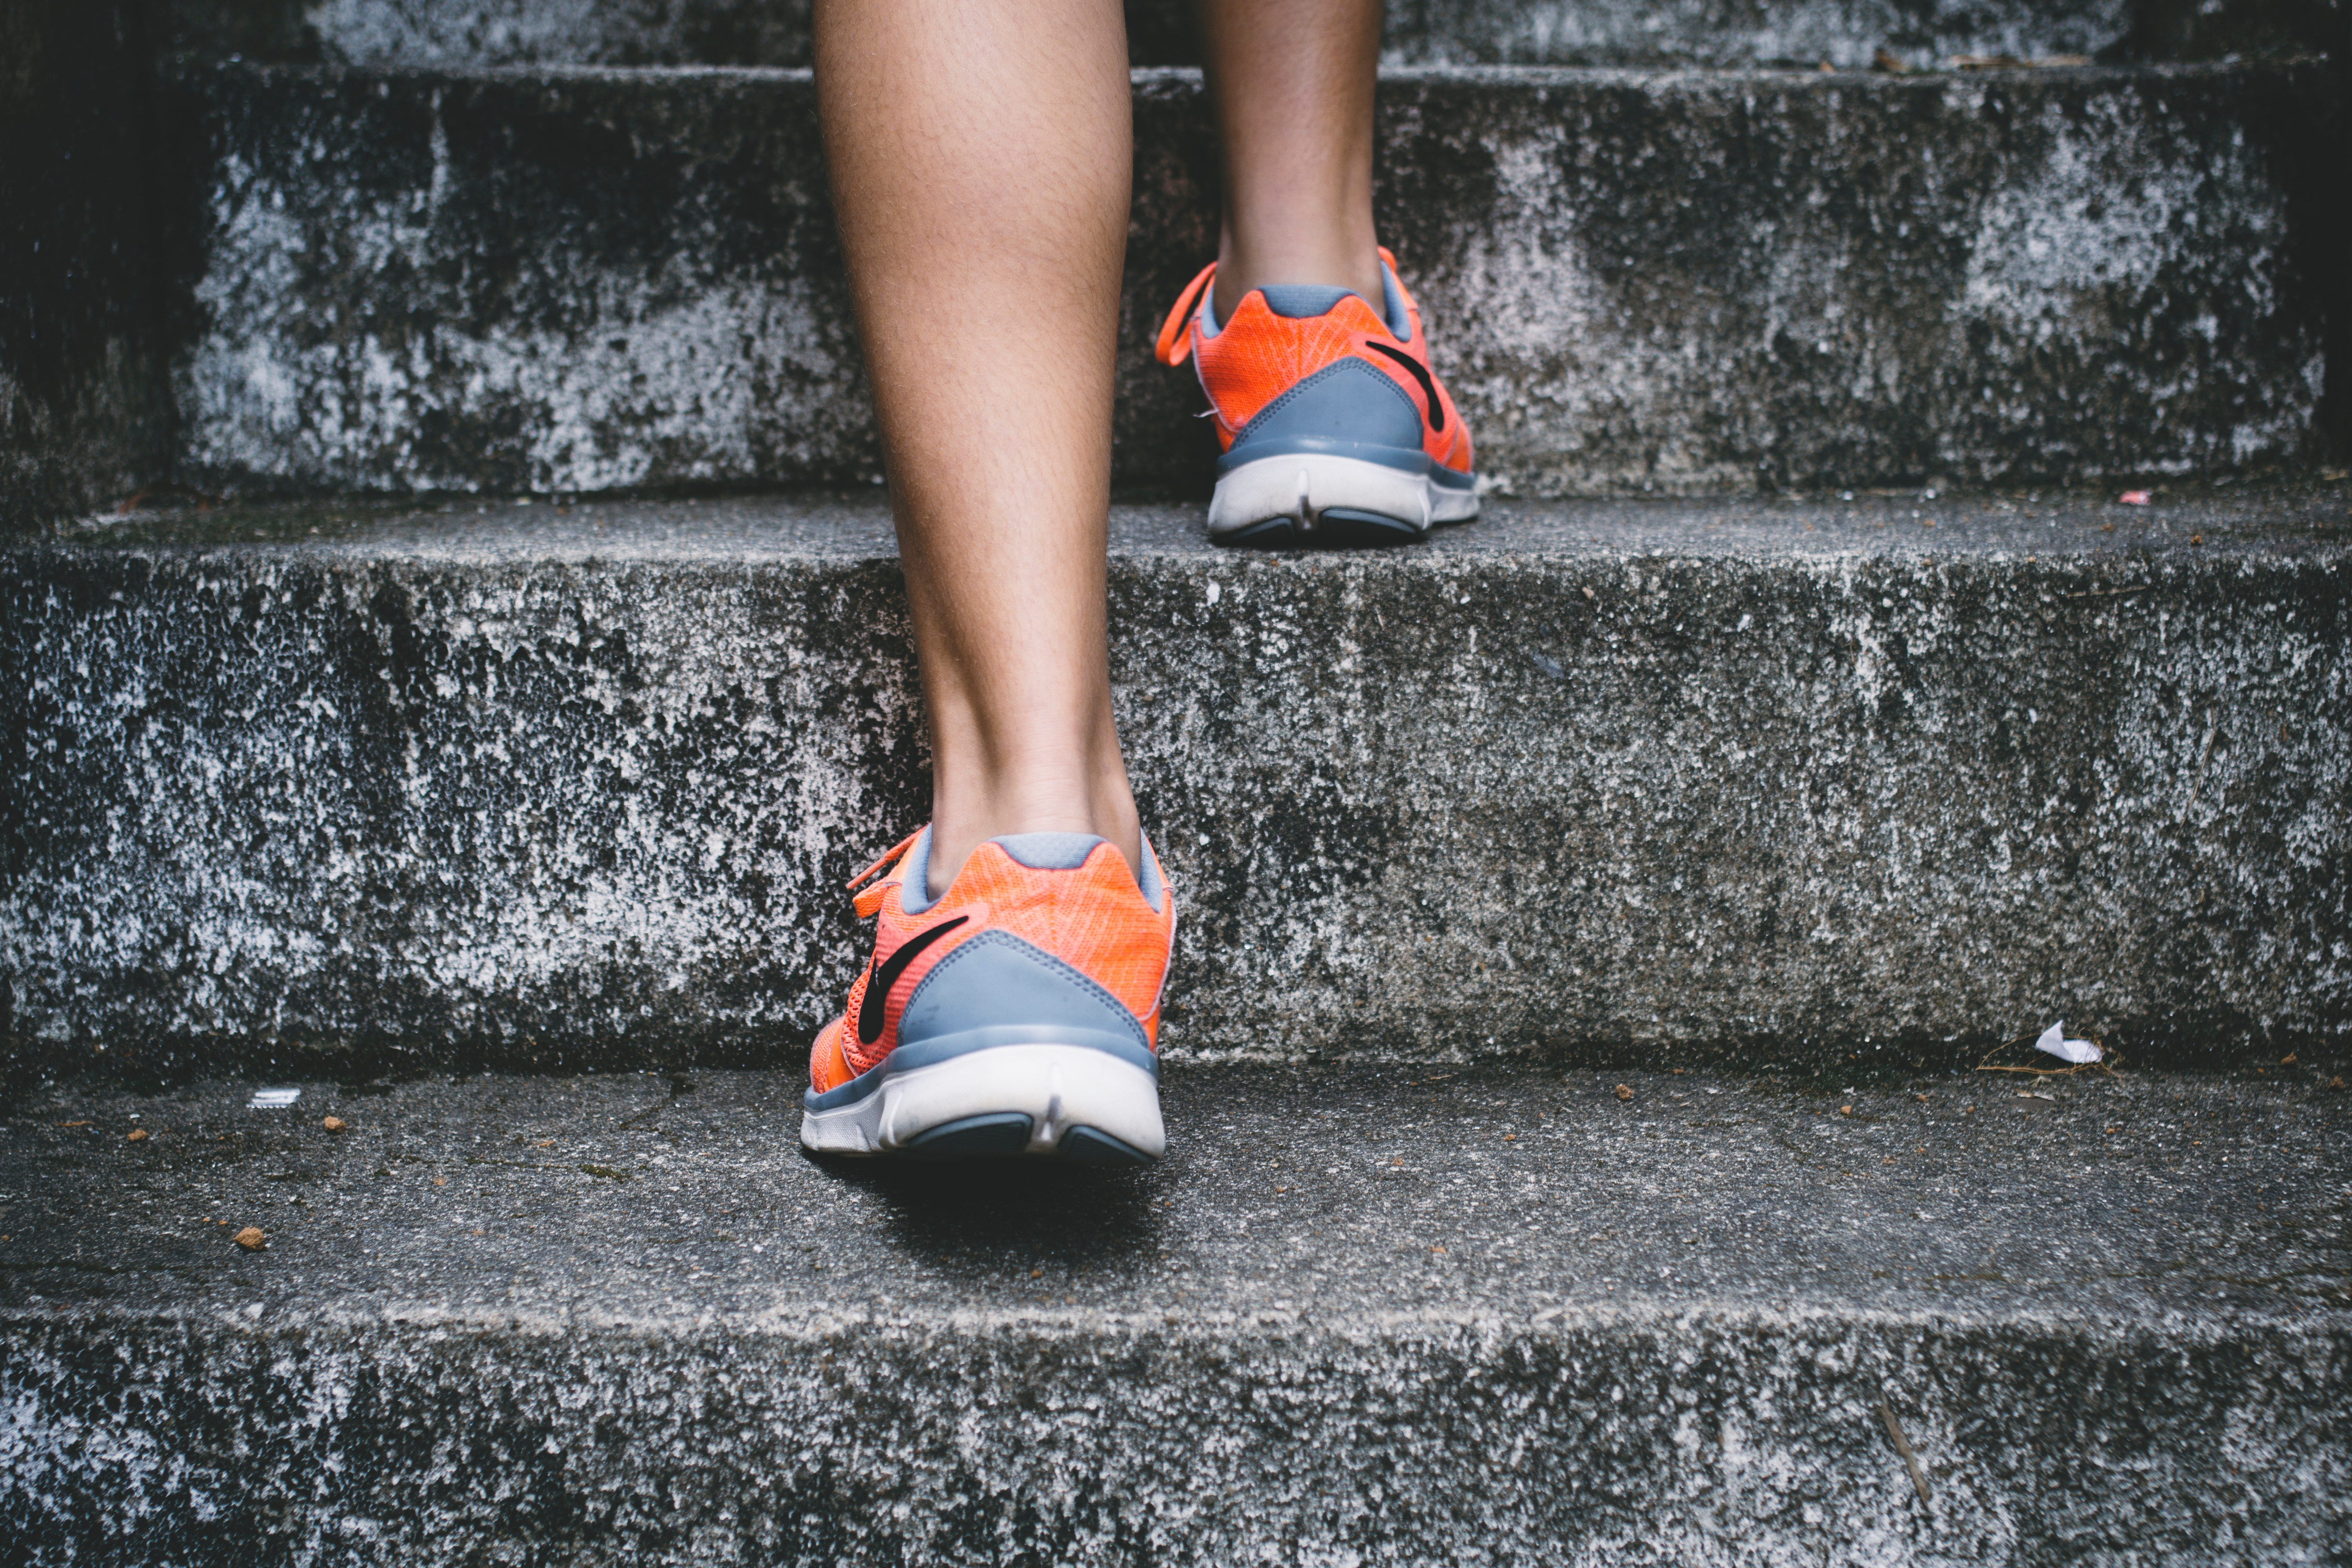 New studies suggest that we've been thinking about willpower all wrong,